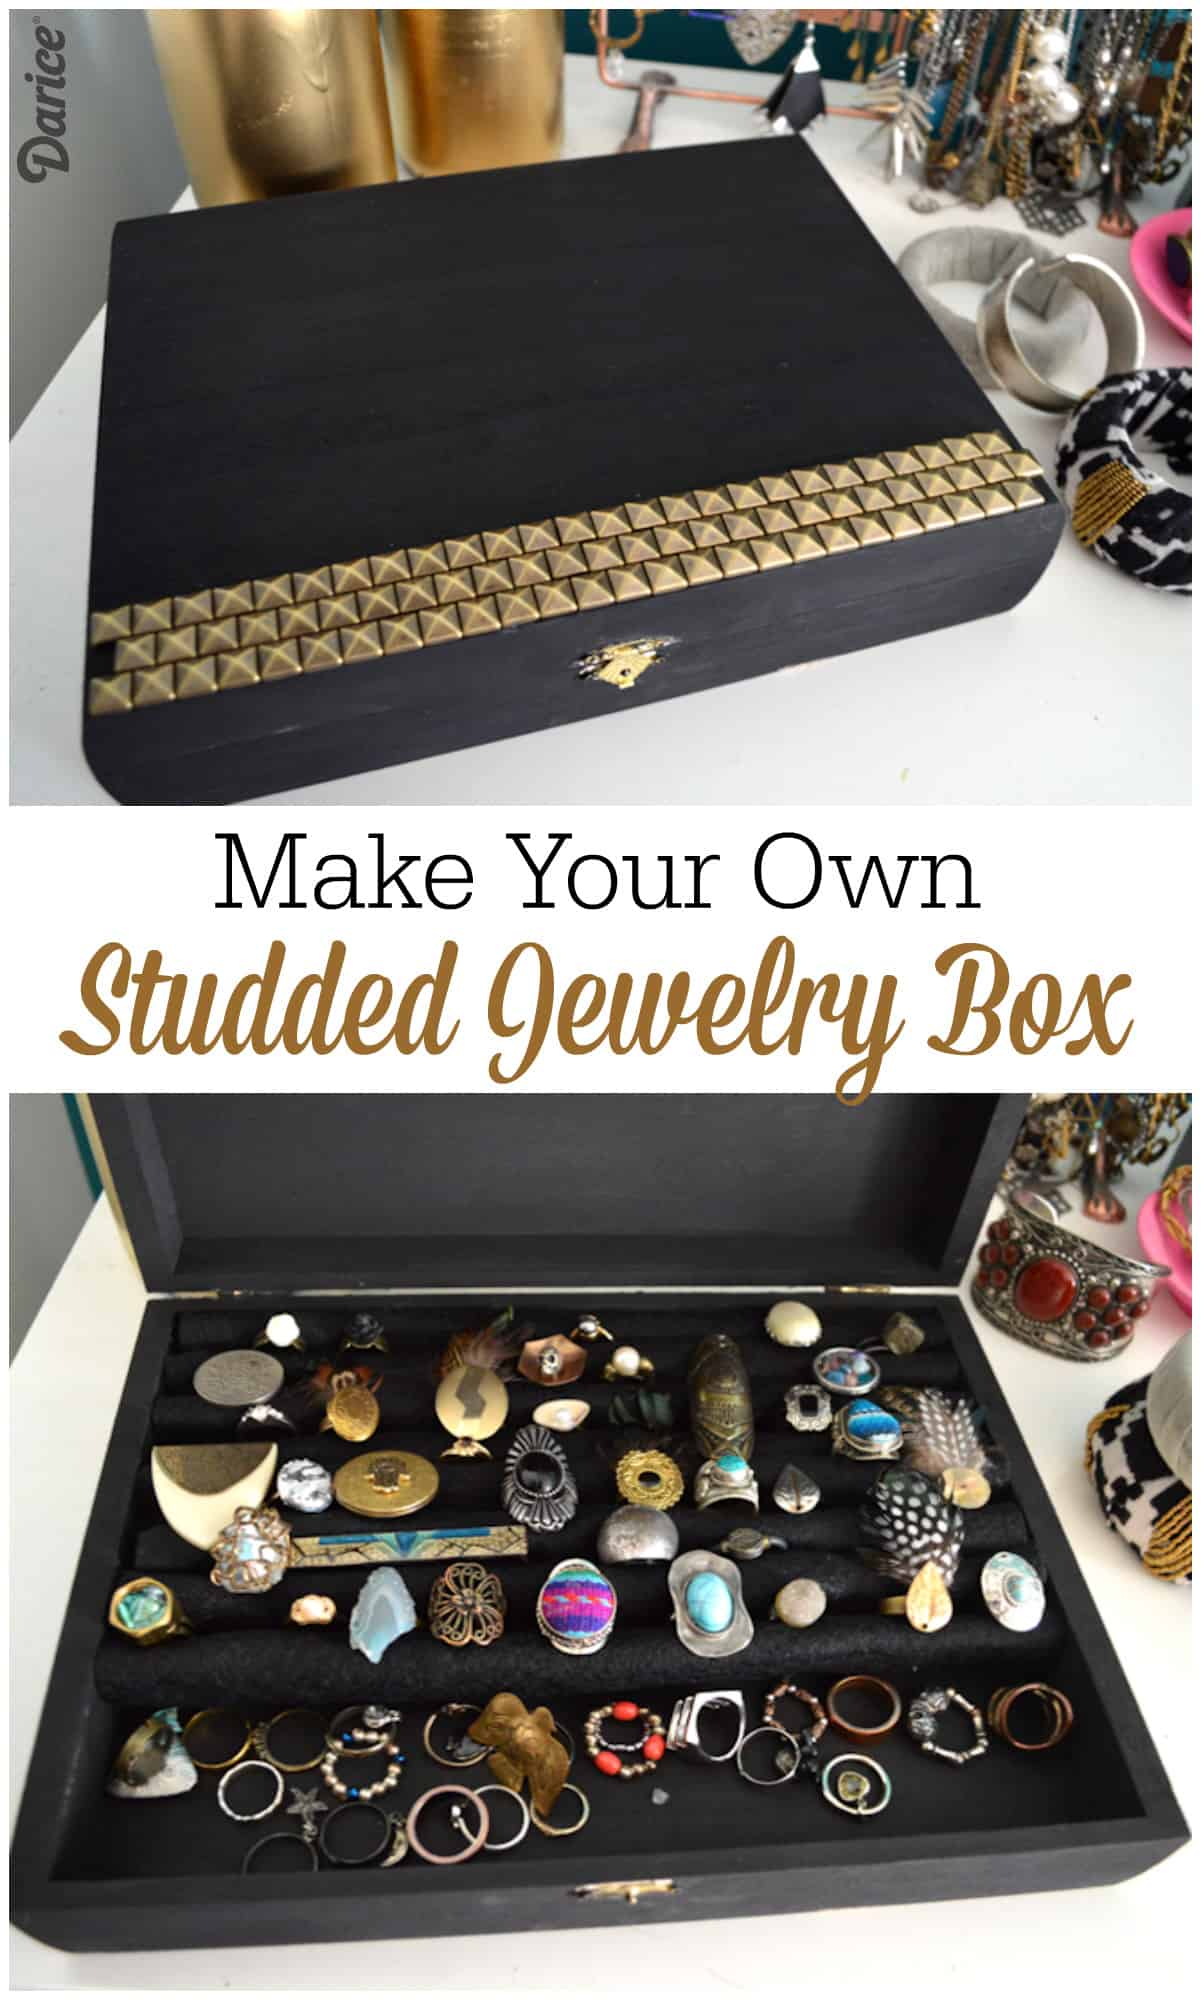 Studded jewelry box